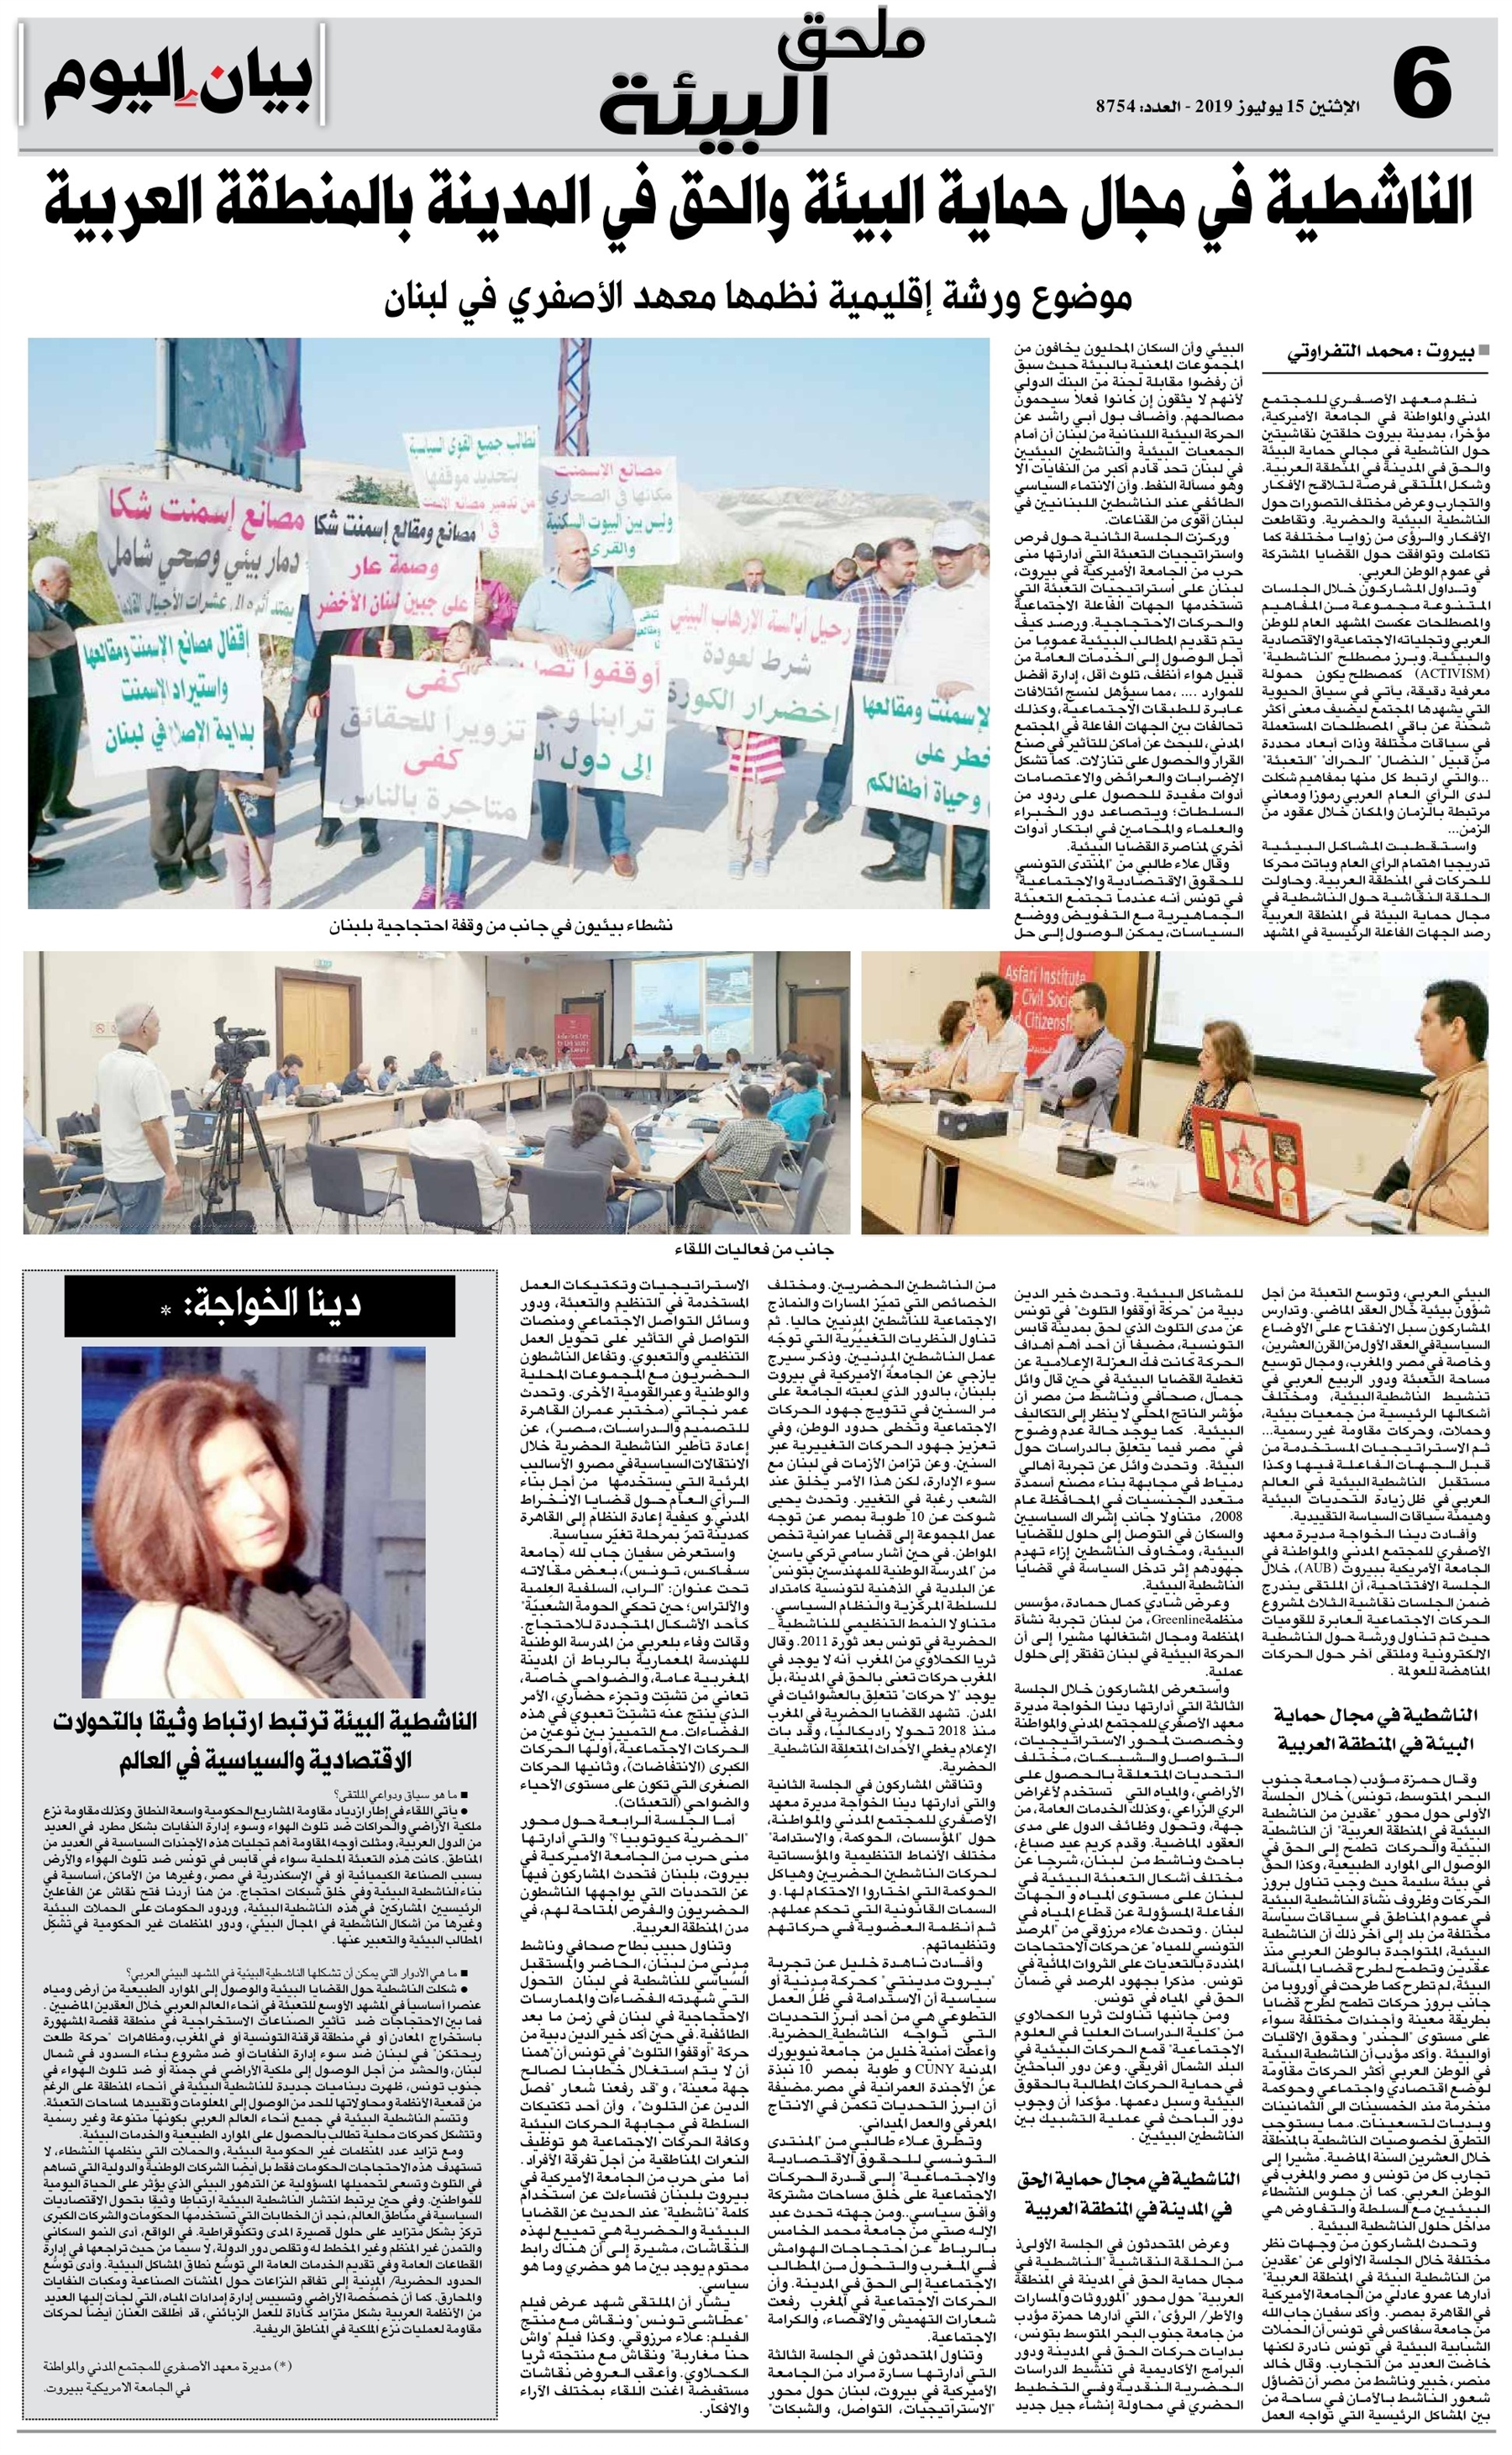 Coverage of the worshop by the Morrocan daily Al-bi'a, published on July 15, 2019